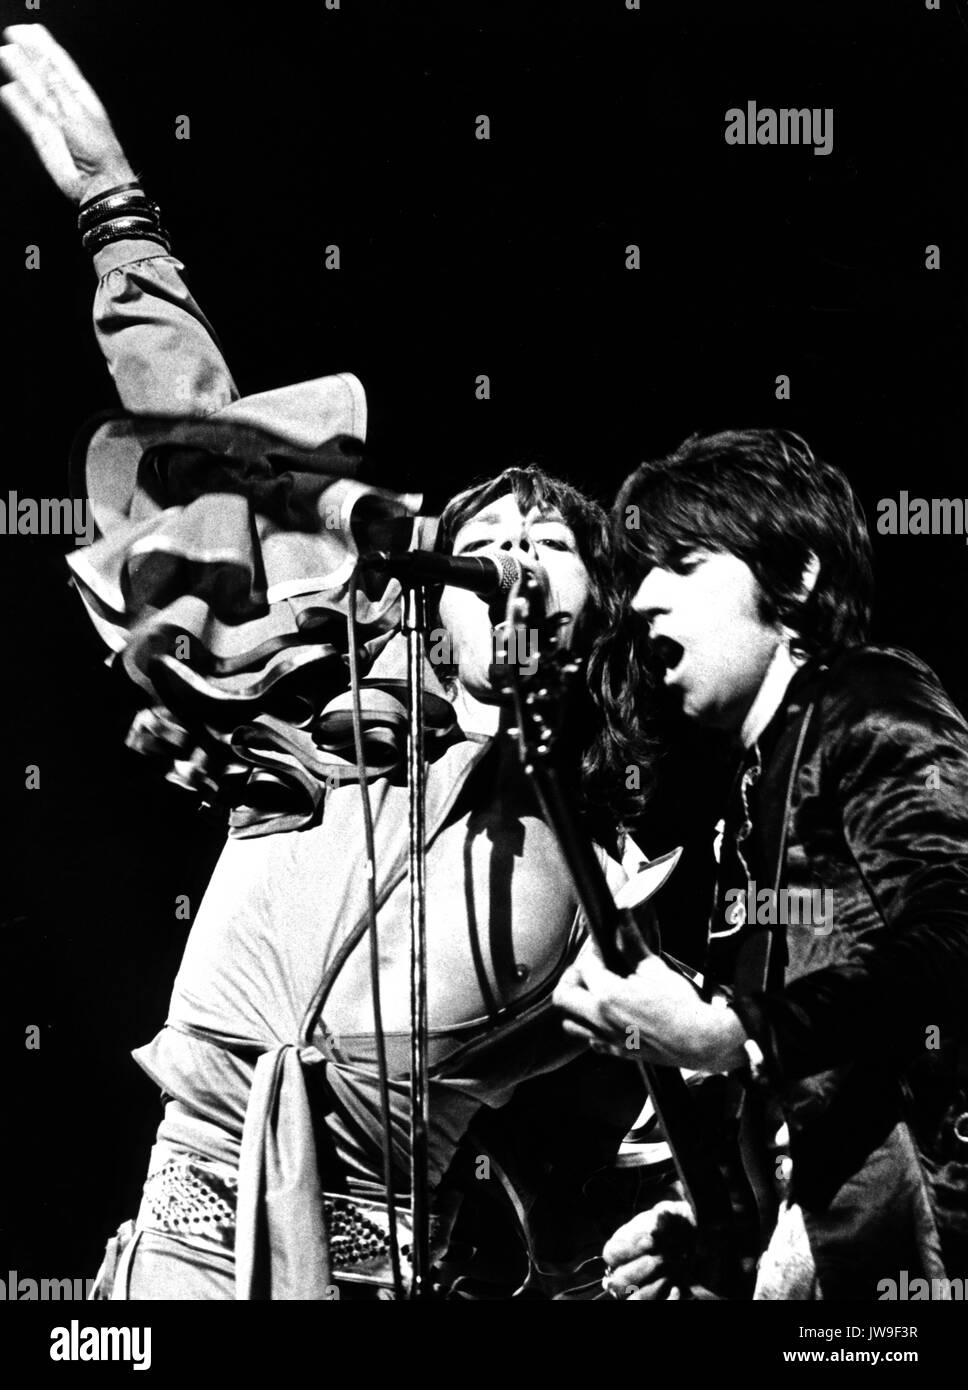 Mick Jagger (l) and Keith Richards on stage. The Rolling Stones on 28 April 1976 at the Festhalle in Frankfurt (Germany). Stock Photo